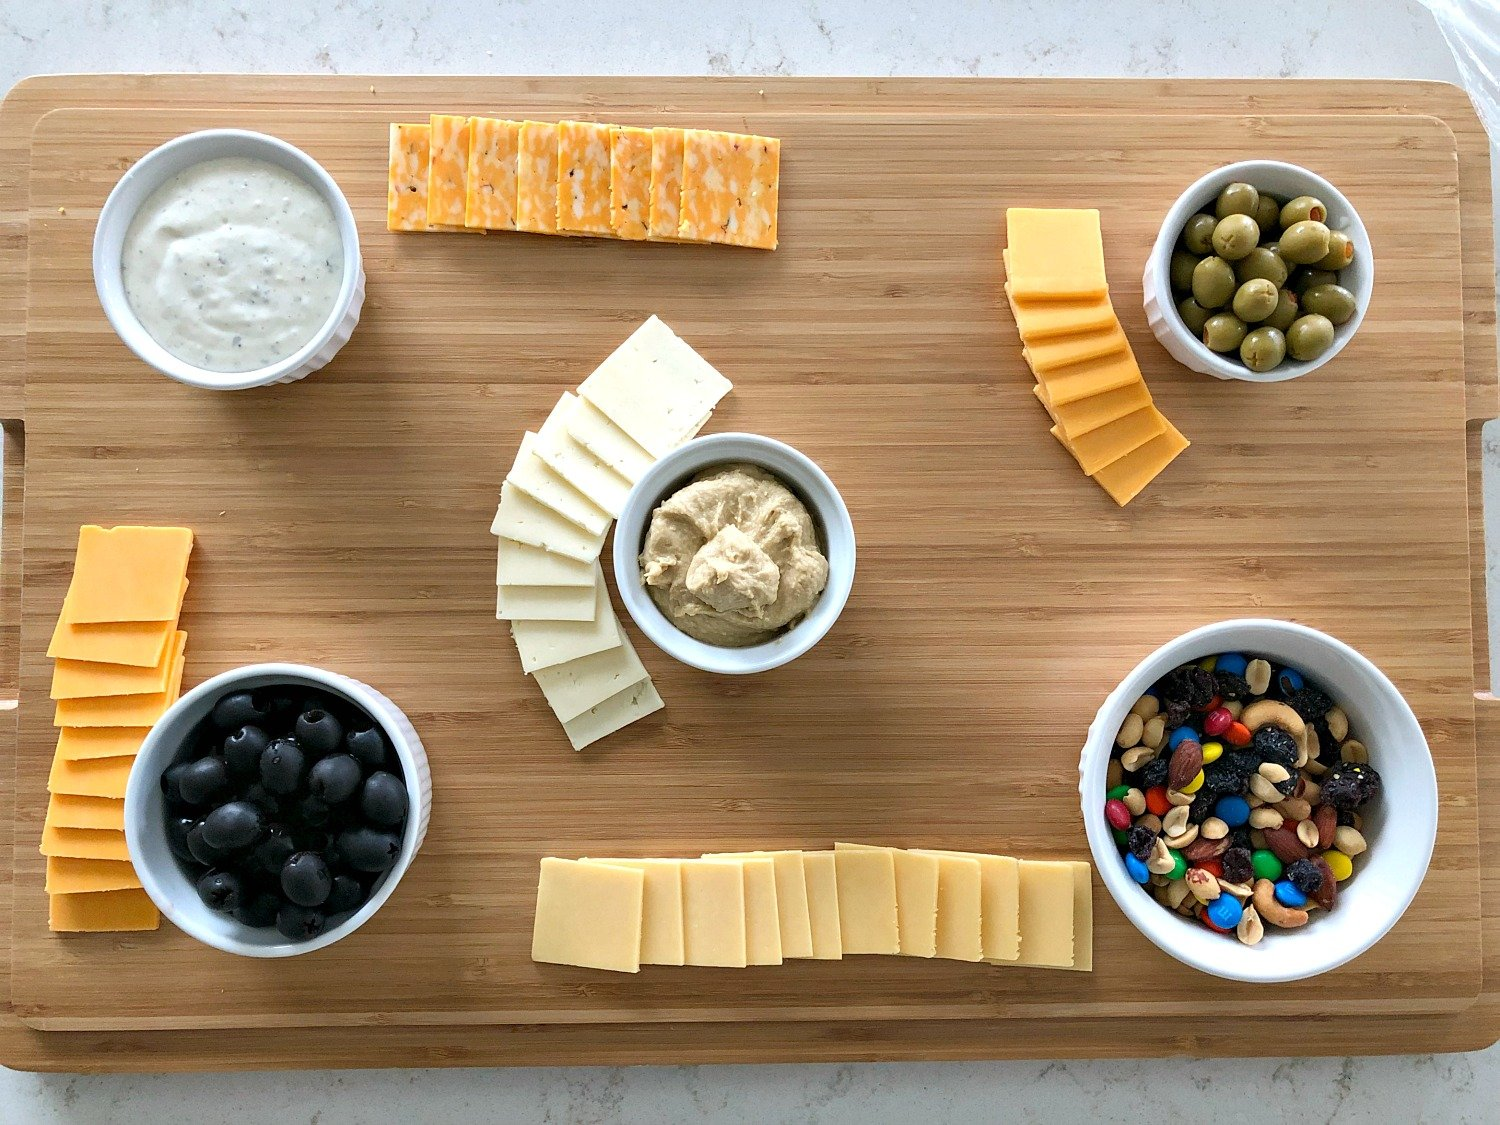 dips and olives in small white bowls with small squares of cheese surrounding them on a wooden cutting board